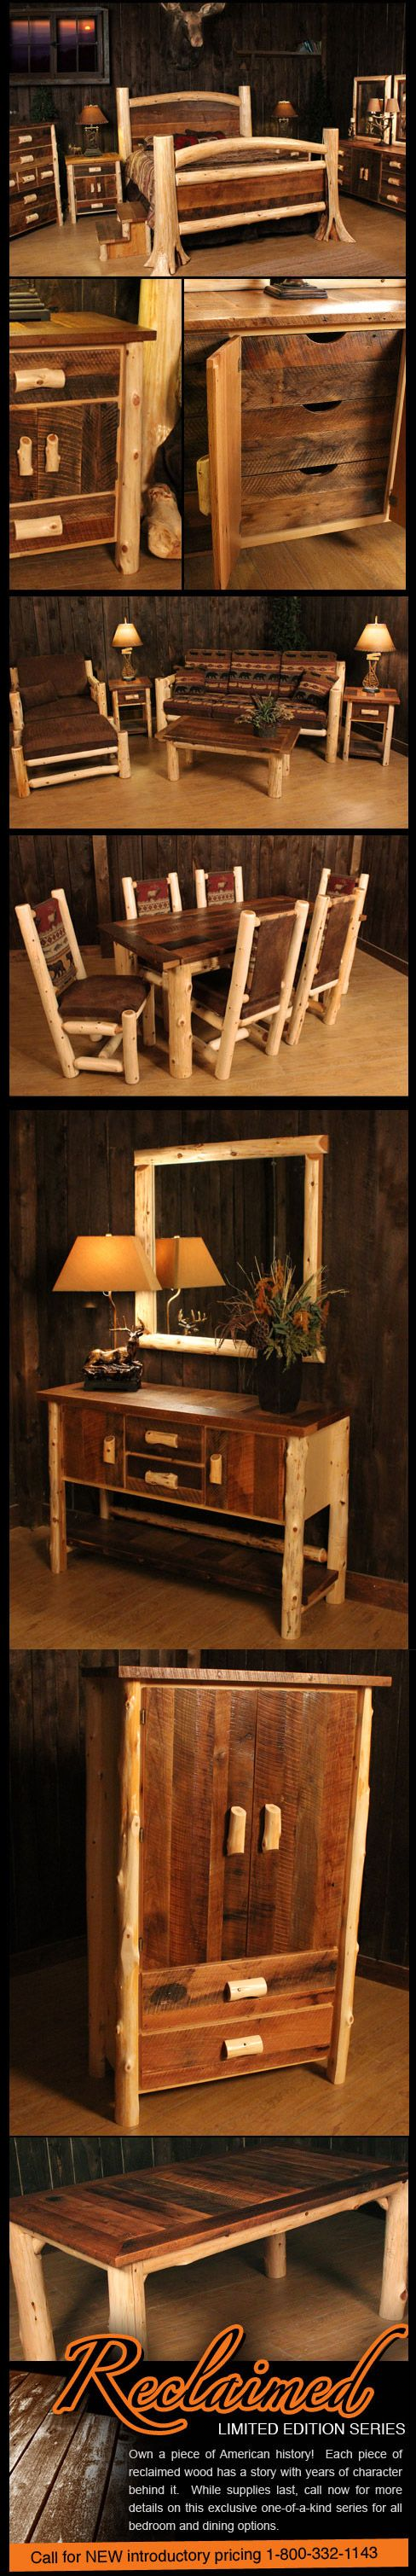 Reclaimed Wood Log Furniture. I can totally see my cousin Whit & Claire  doing many - 25+ Best Ideas About Reclaimed Wood Furniture On Pinterest Barn